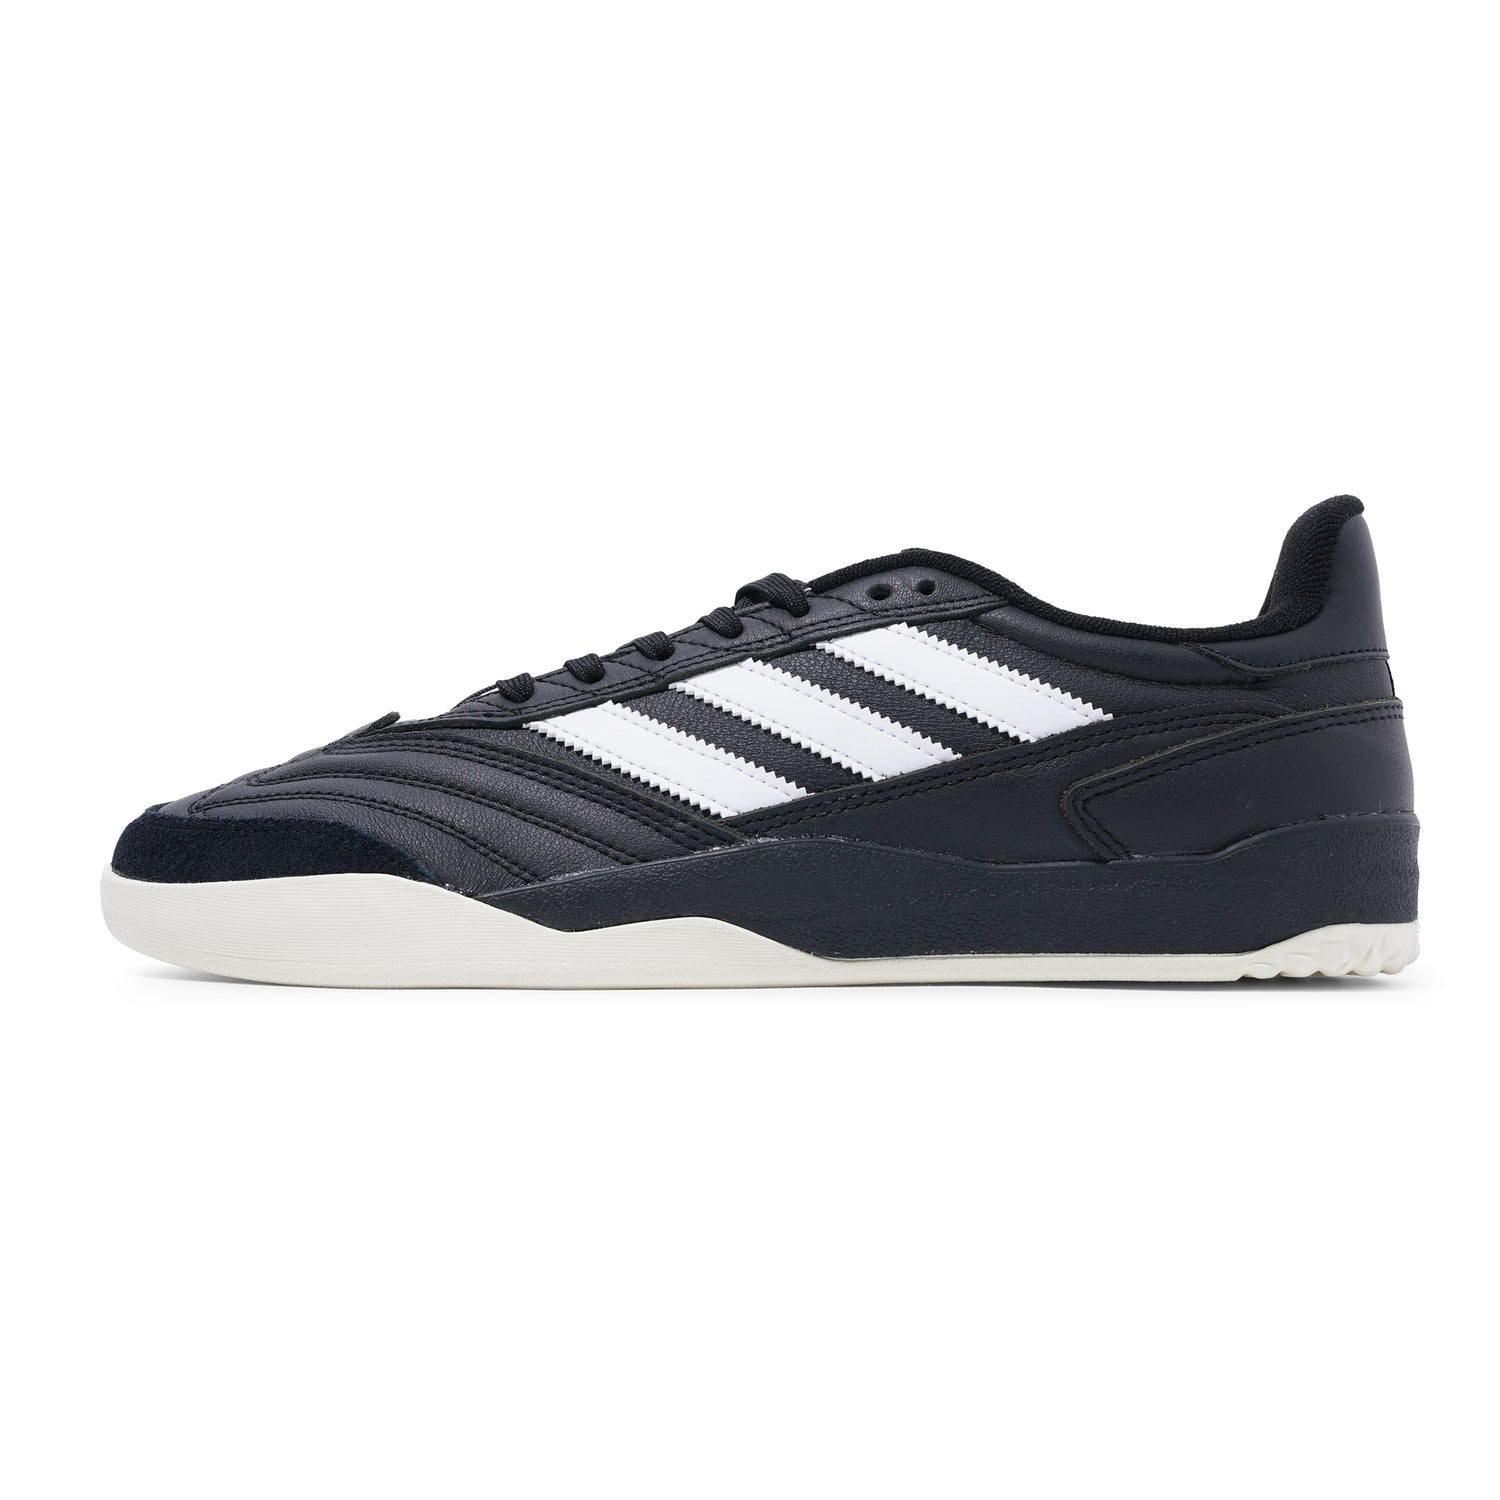 Copa Nationale, Core Black / Cloud White / Cream White